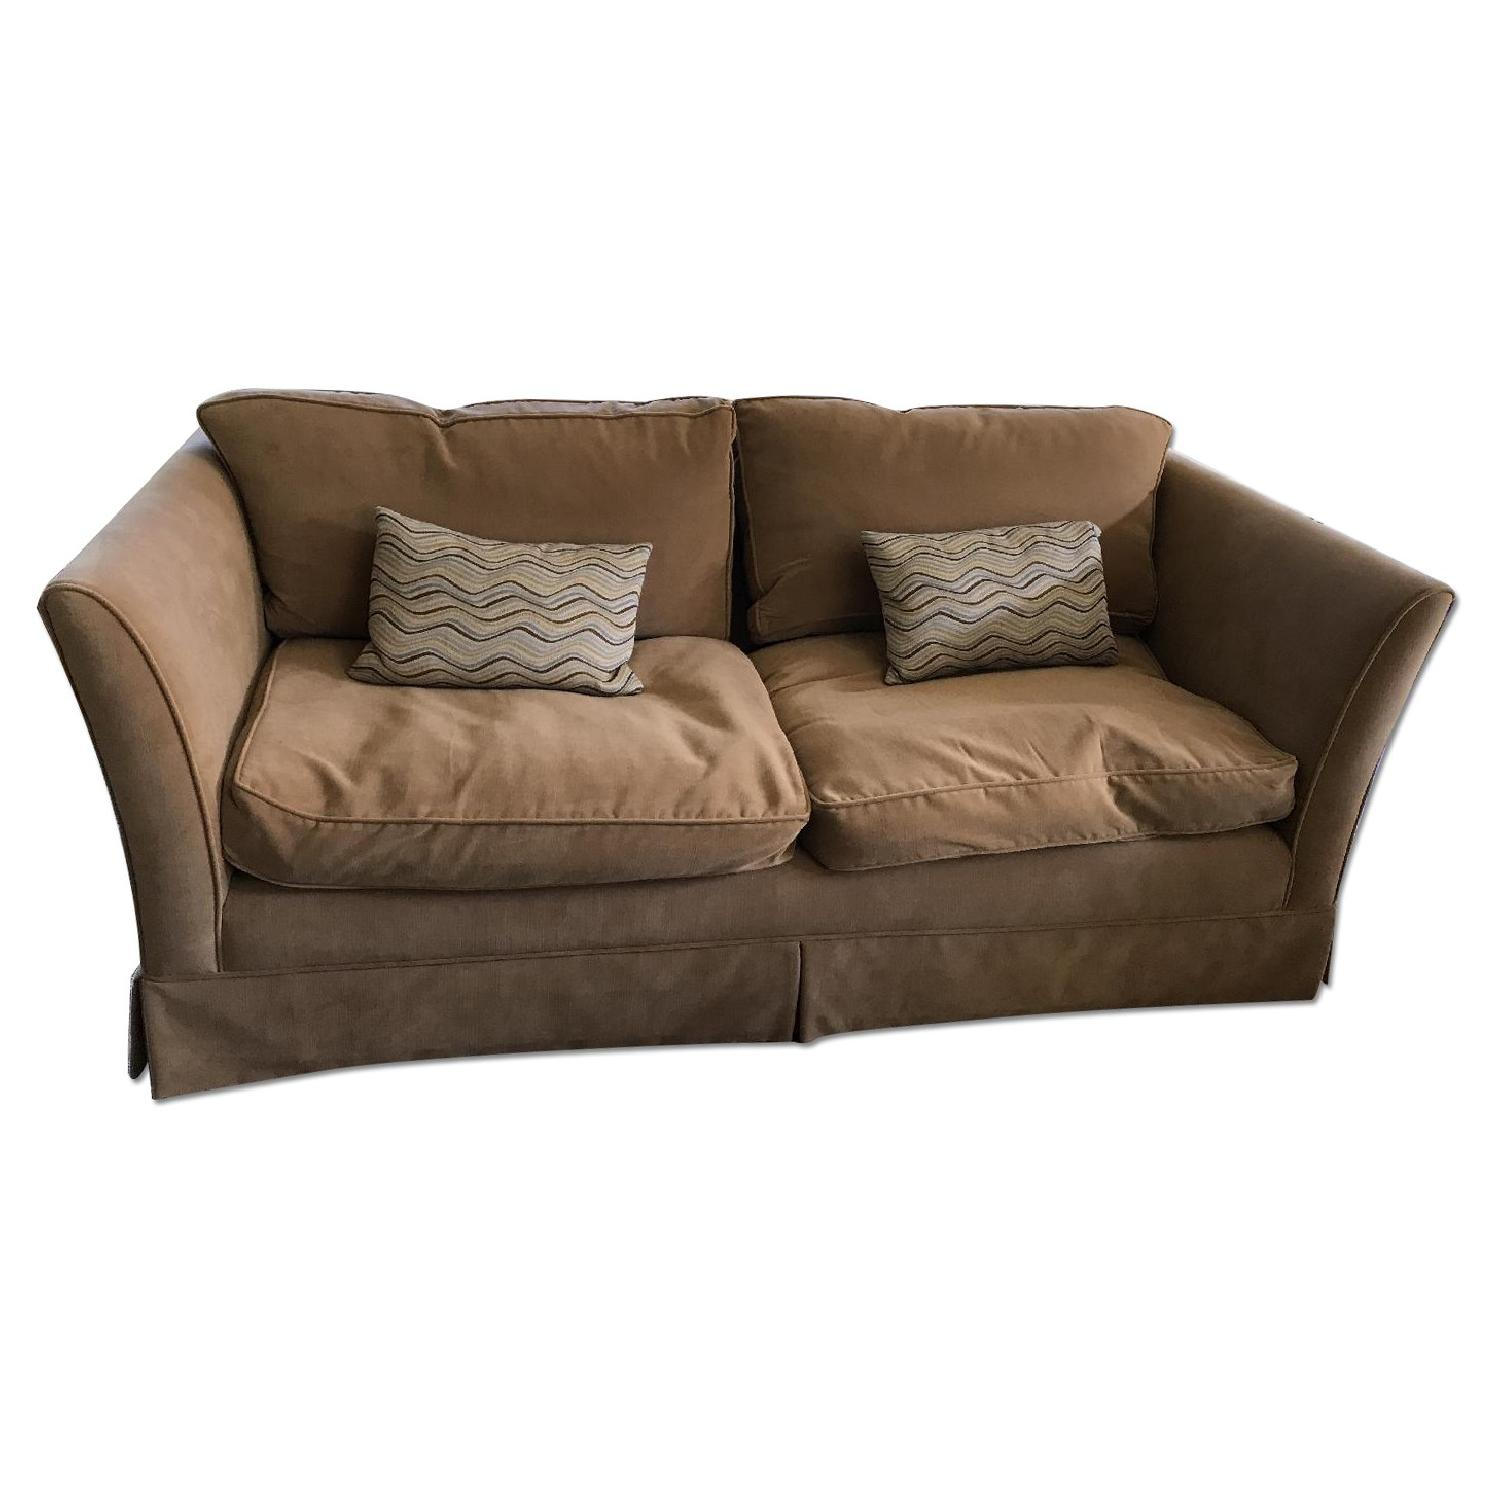 Custom Made Shelter Arm Couch